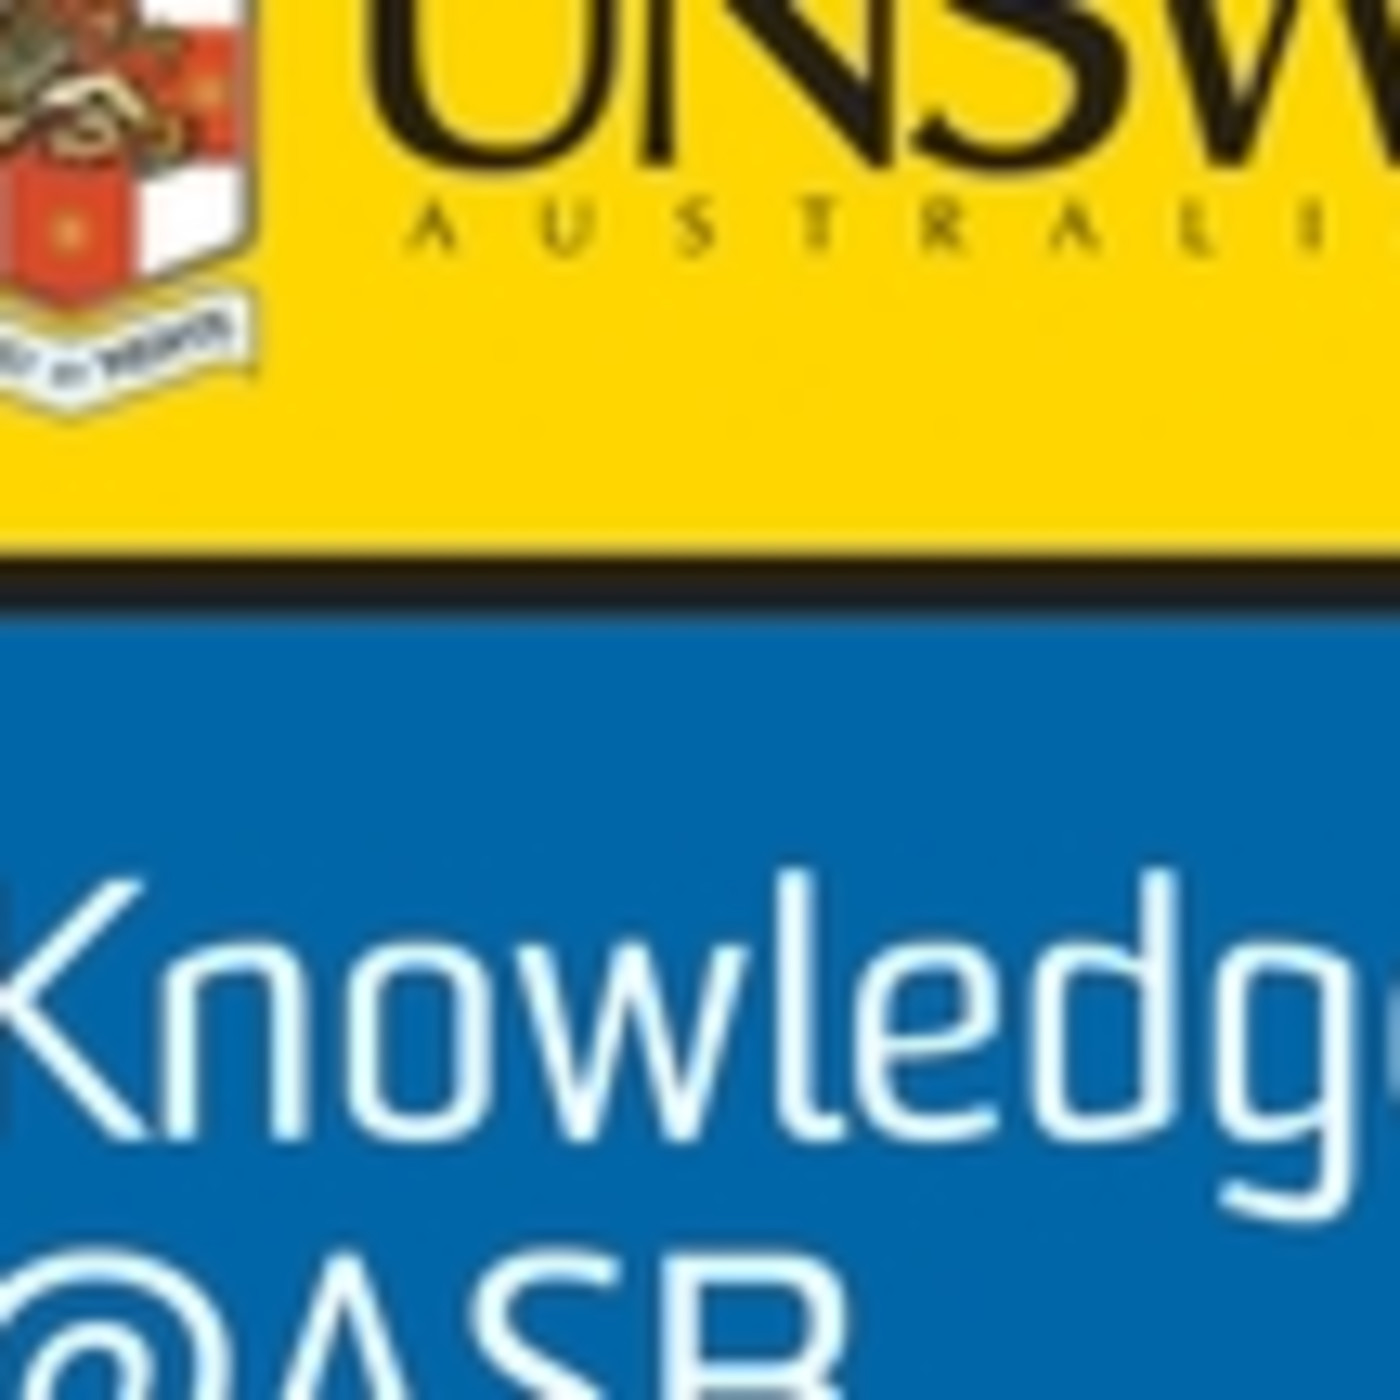 Knowledge@Australian School of Business by UNSW: The